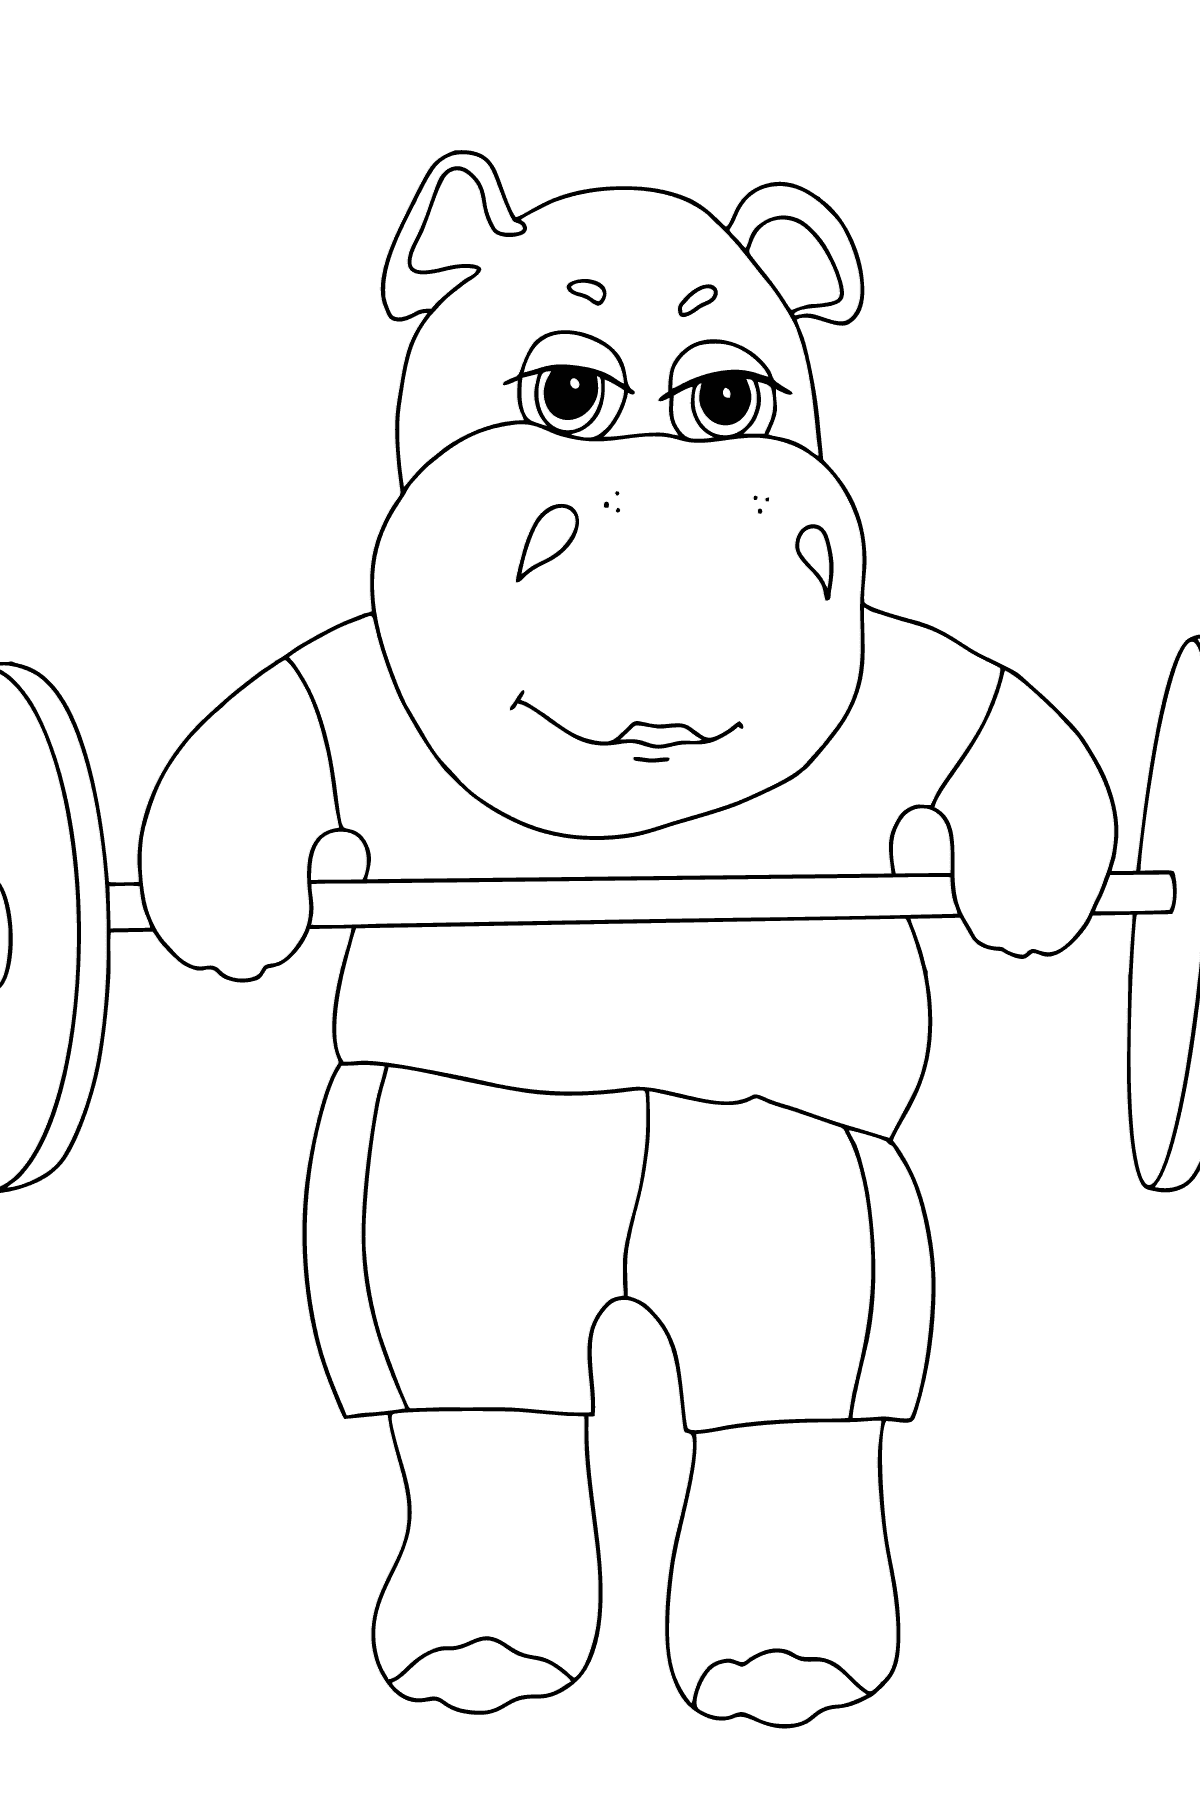 Coloring Page - A Hippo Lifts a Barbell for Kids